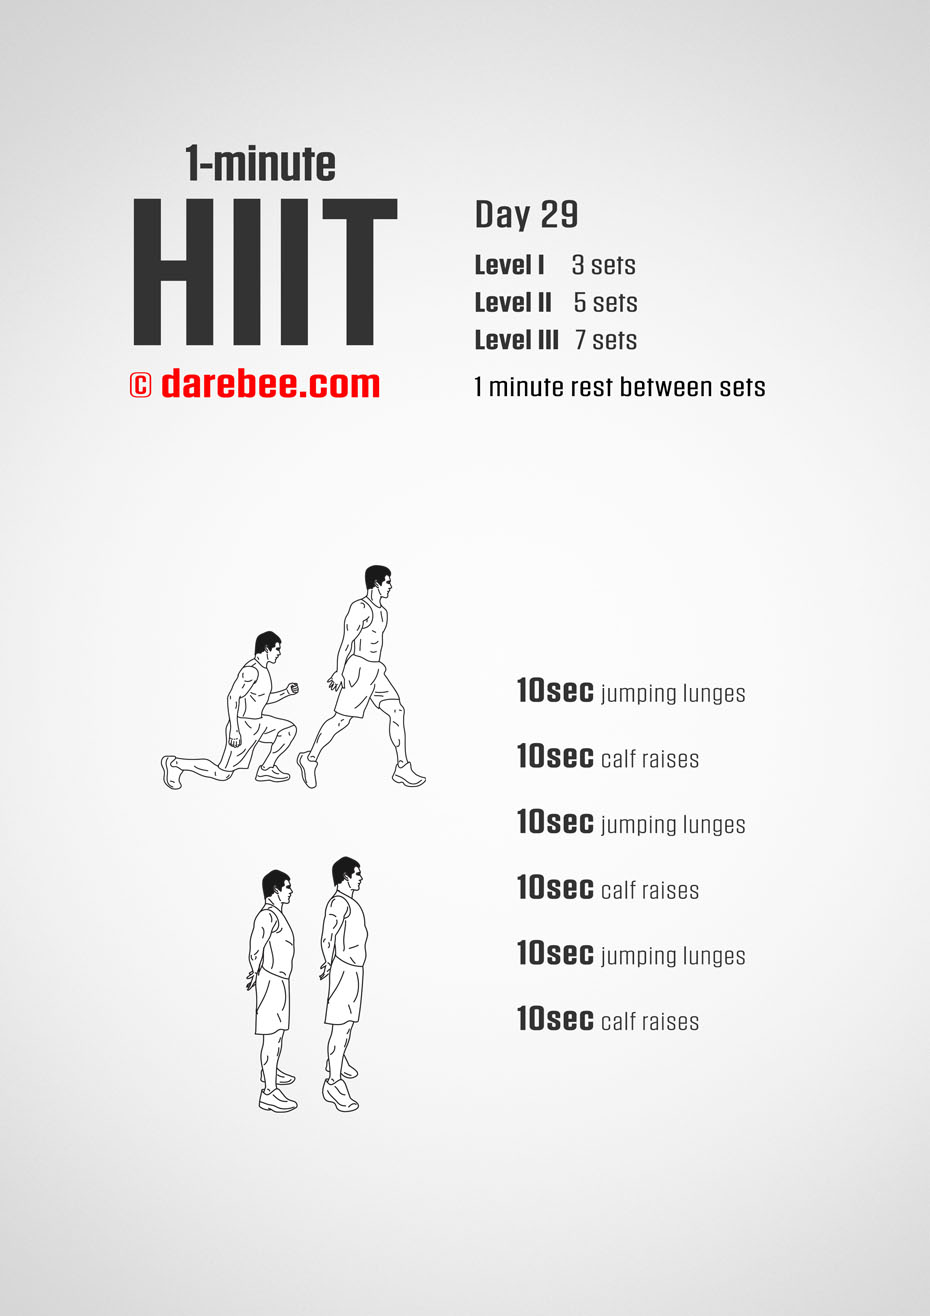 1-Mniute HIIT - 30-Day Program by DAREBEE